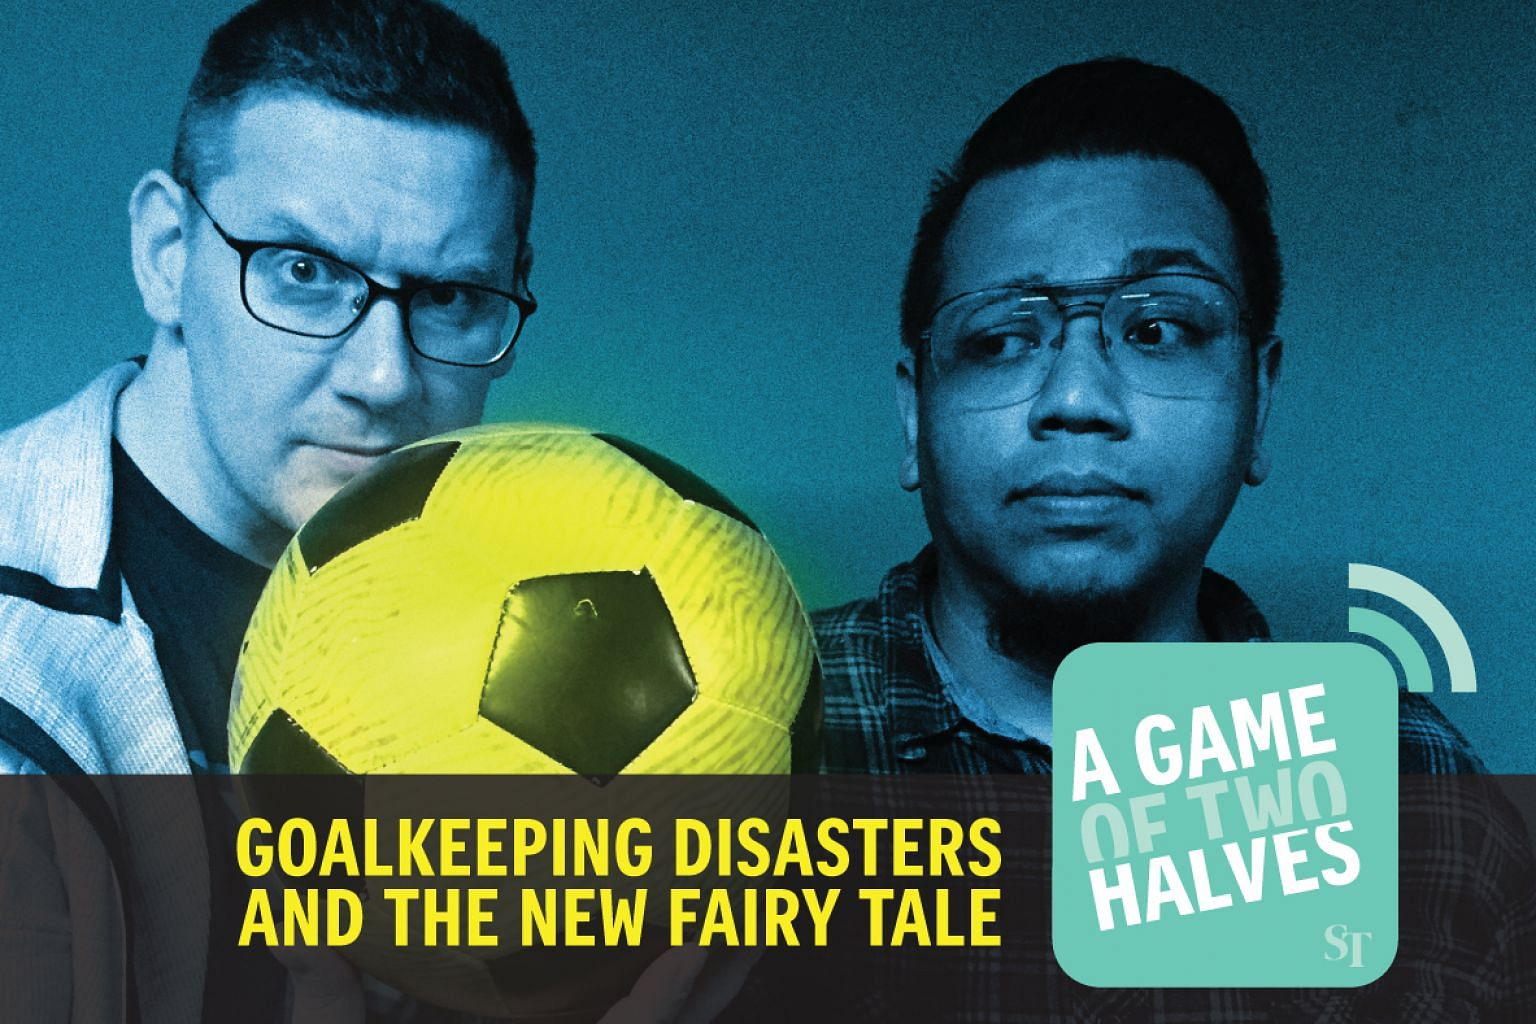 A Game Of Two Halves sports podcast